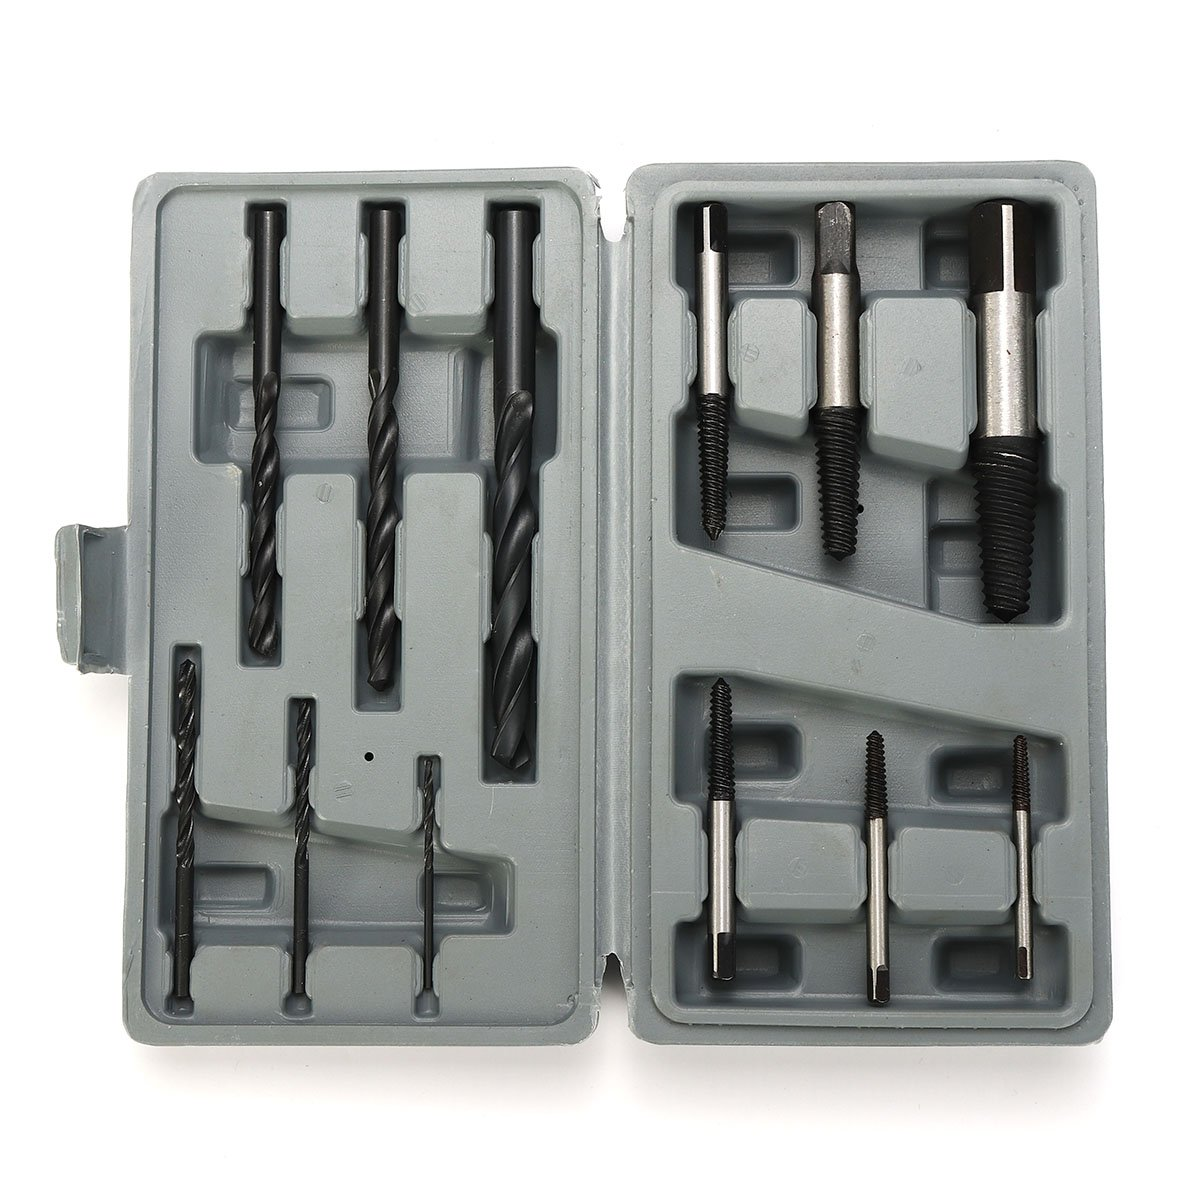 Yingte Screw Stud Extractor Remover Set, 12Pcs HSS Stud Screw Extractor Remover Tool Set Reverse Thread Easy Out 3-25mm